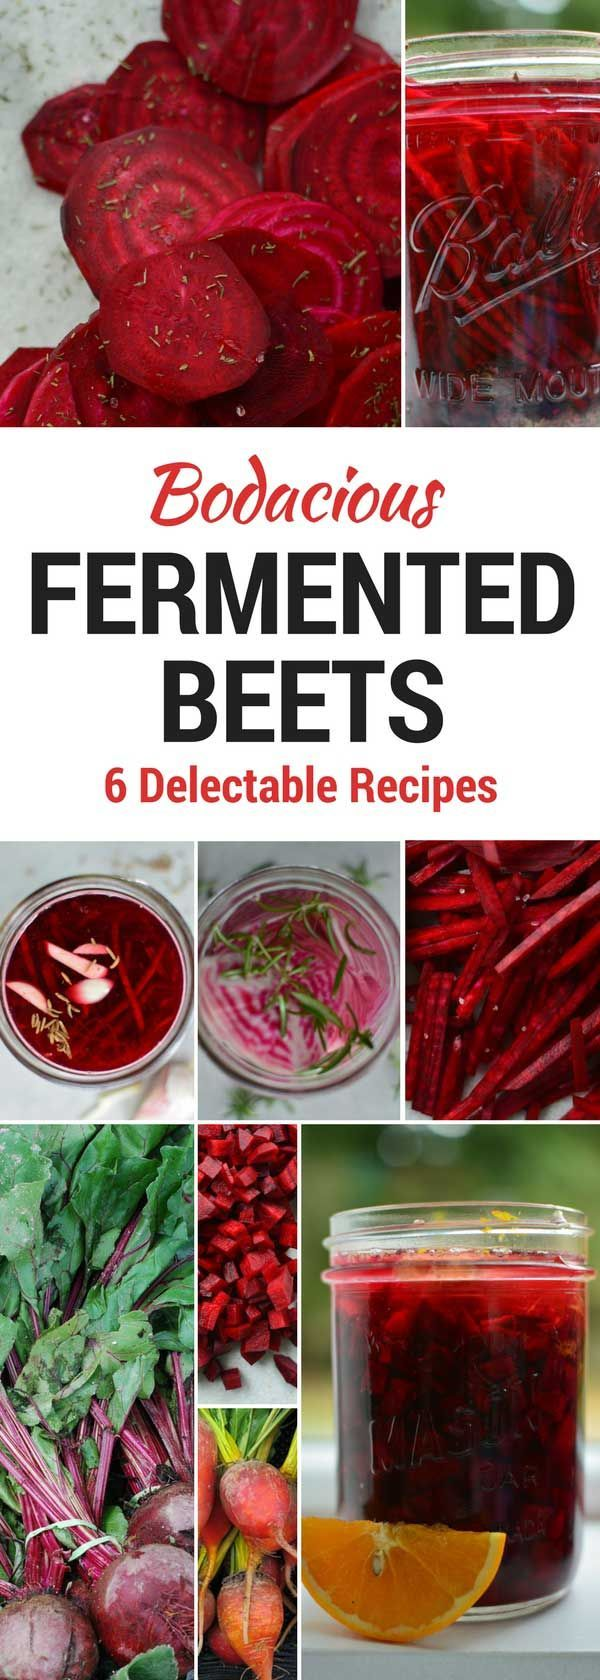 How to make naturally fermented beets in 6 delectable flavors. Easy to make. No vinegar. No canning. Tips & Tricks for successful fermentation. Benefits. via @makesauerkraut